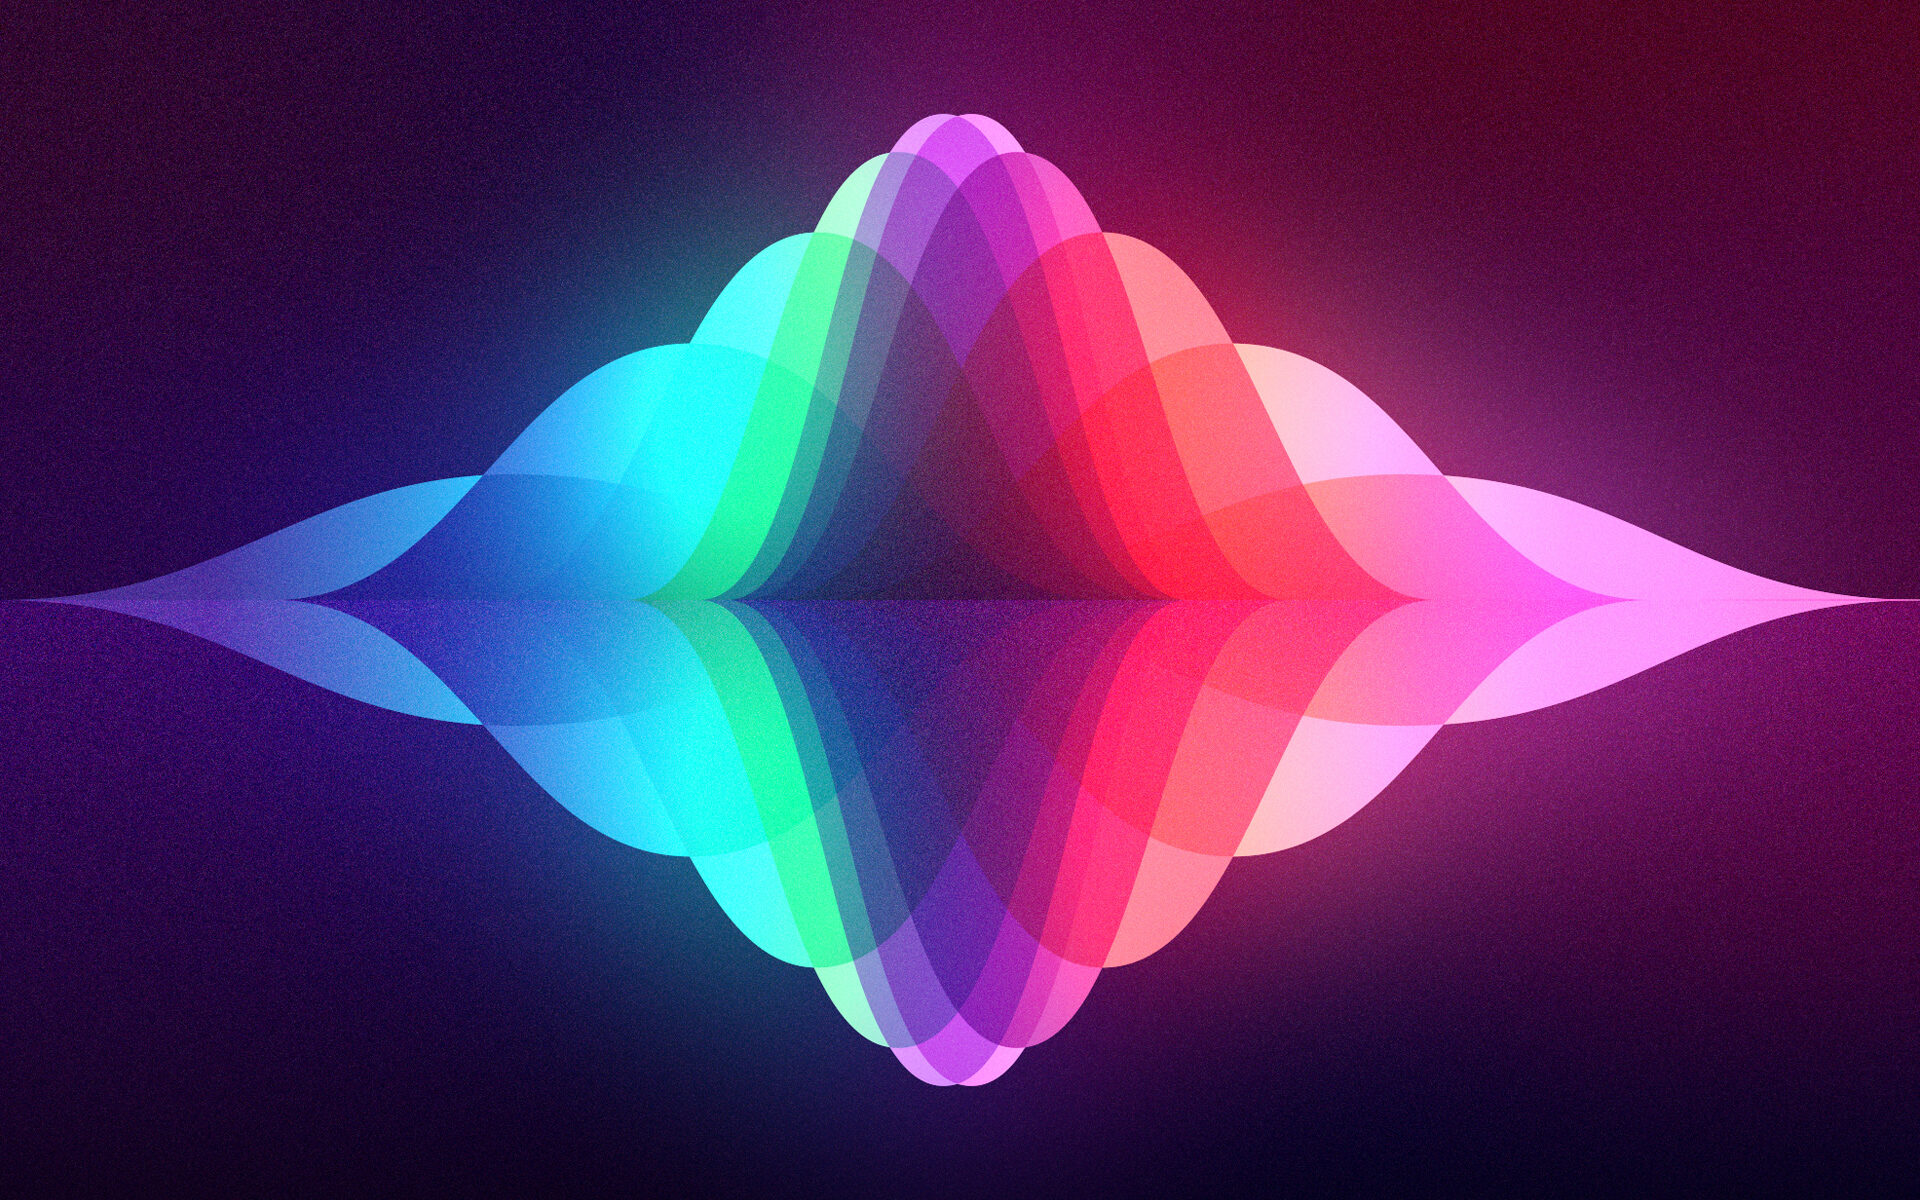 Google Music Sound Waves5992112457 - Google Music Sound Waves - Waves, Sound, Music, Lowpoly, Google